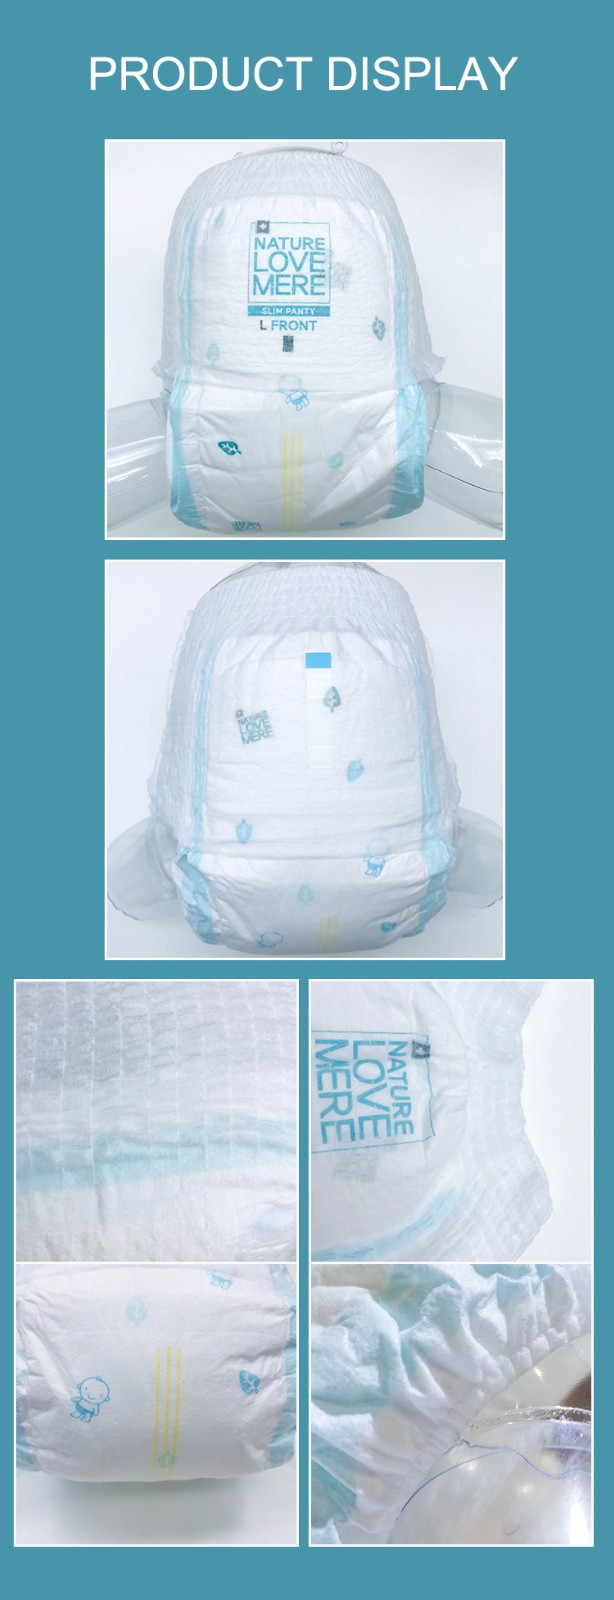 breathable best diaper brand premium order for baby boy-7